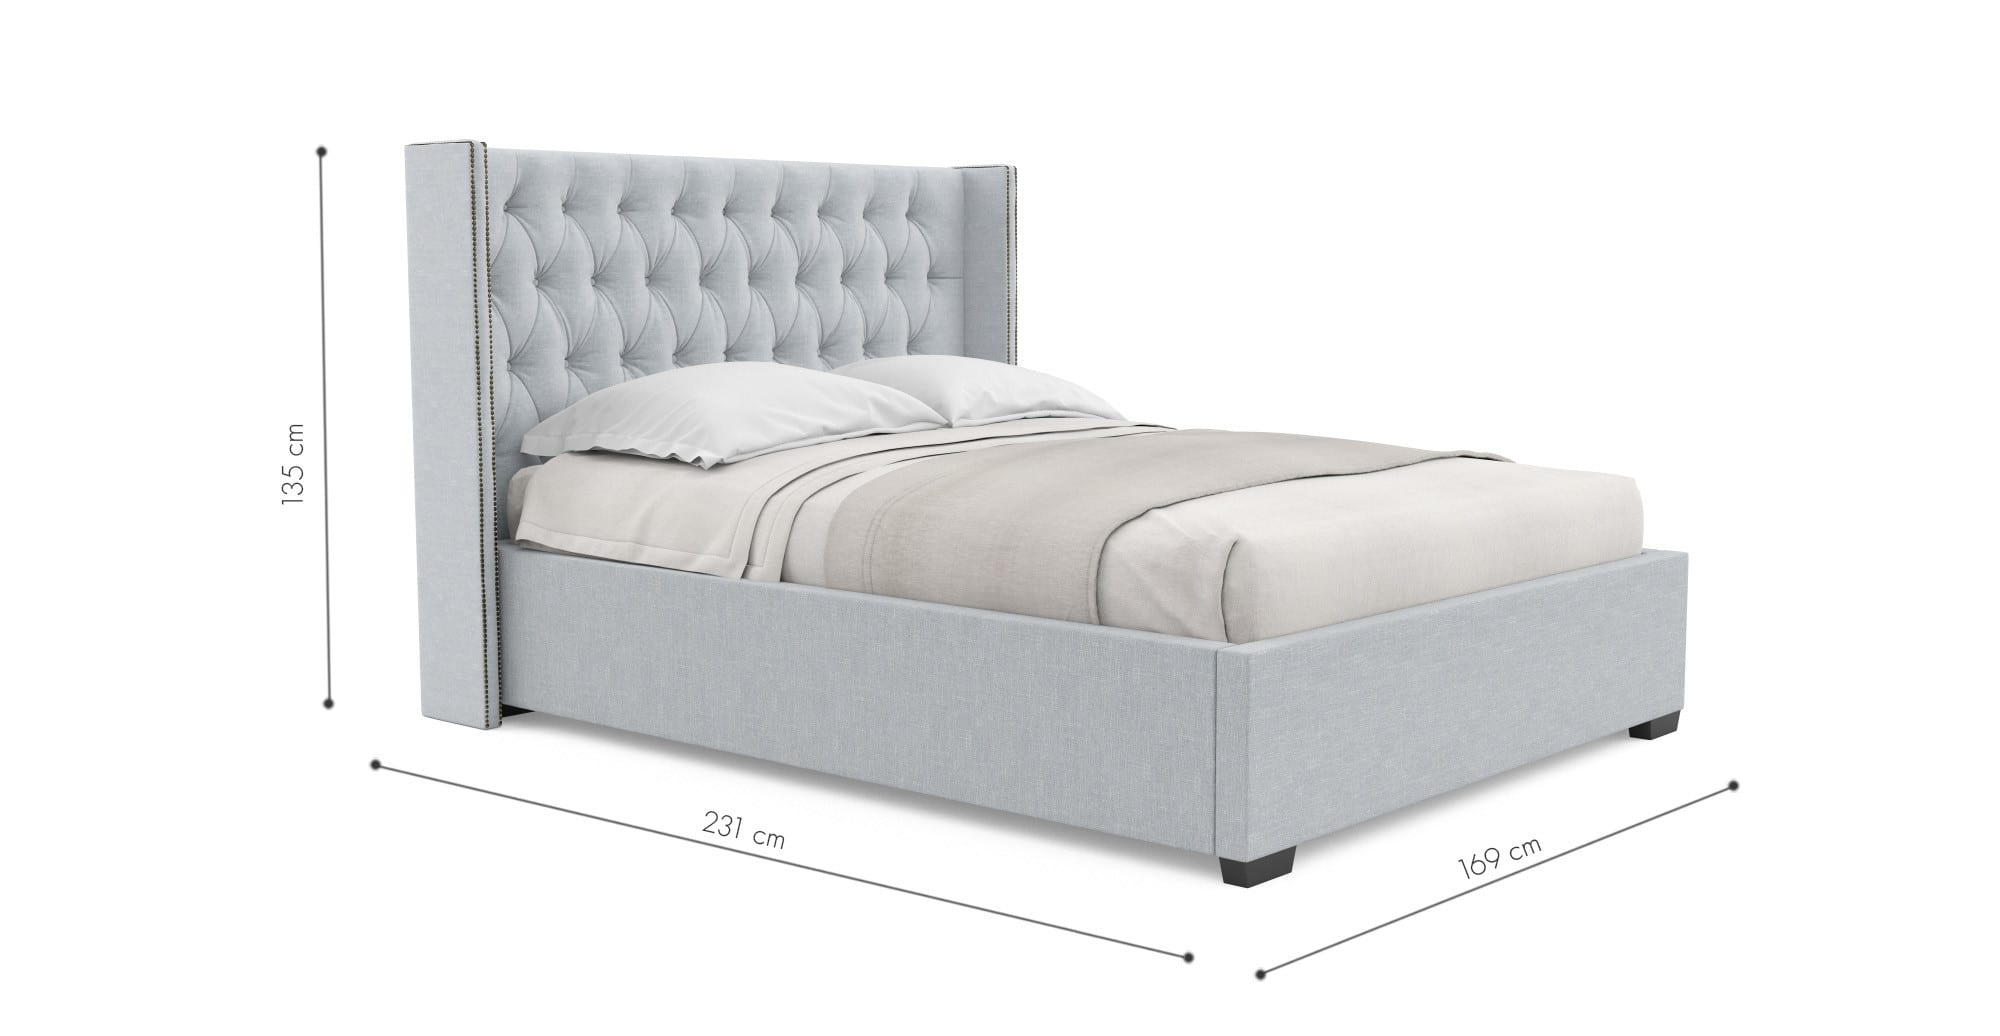 Trend Queen Sized Bed Concept